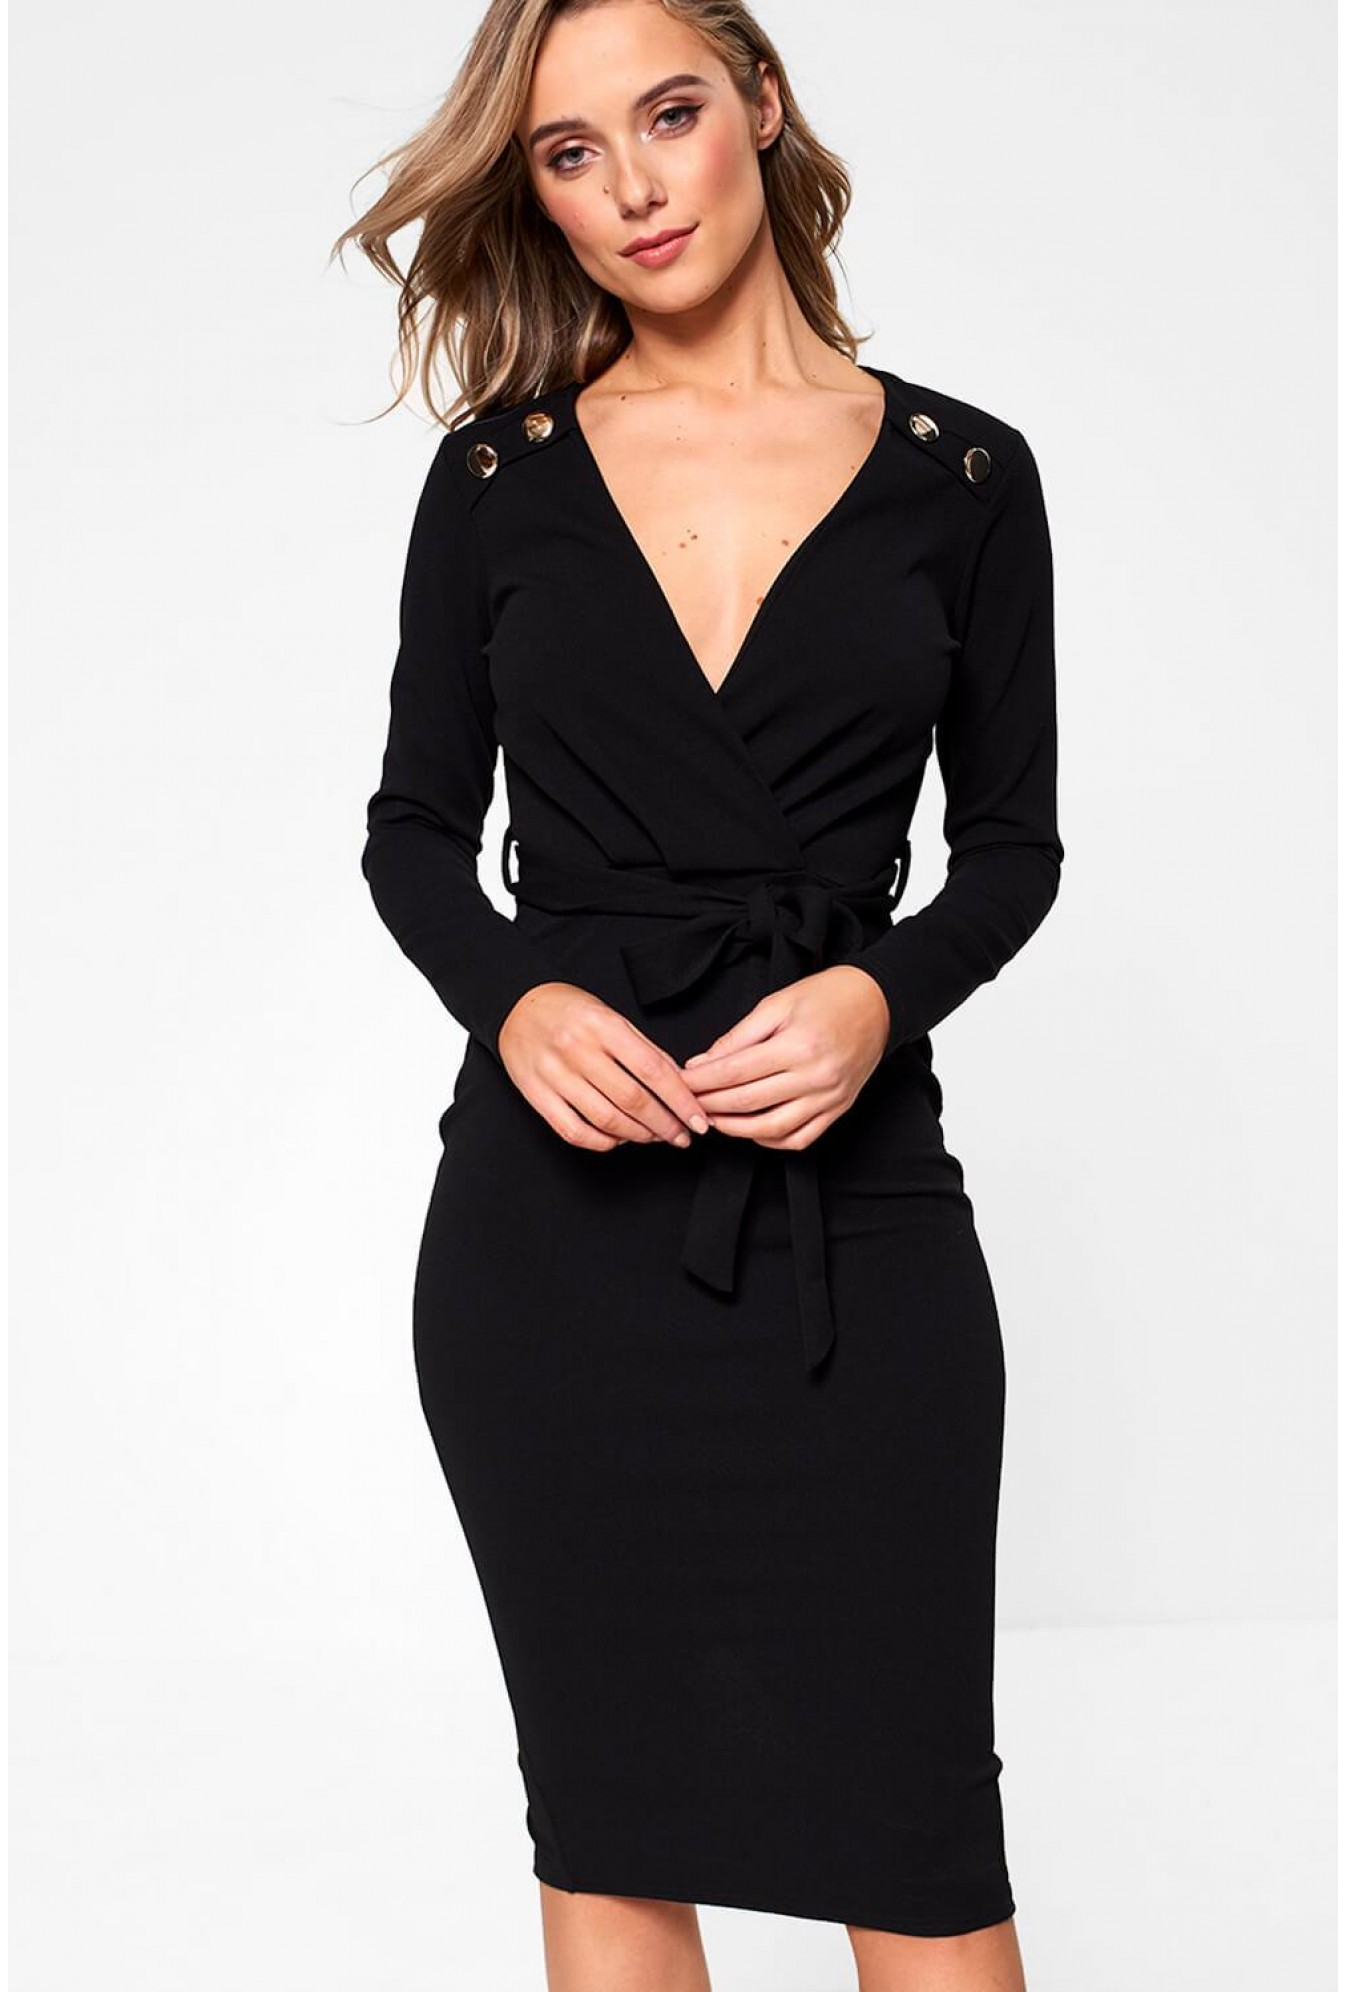 1d12decf6505 Ayanapa Lara Button Detail Fitted Dress in Black